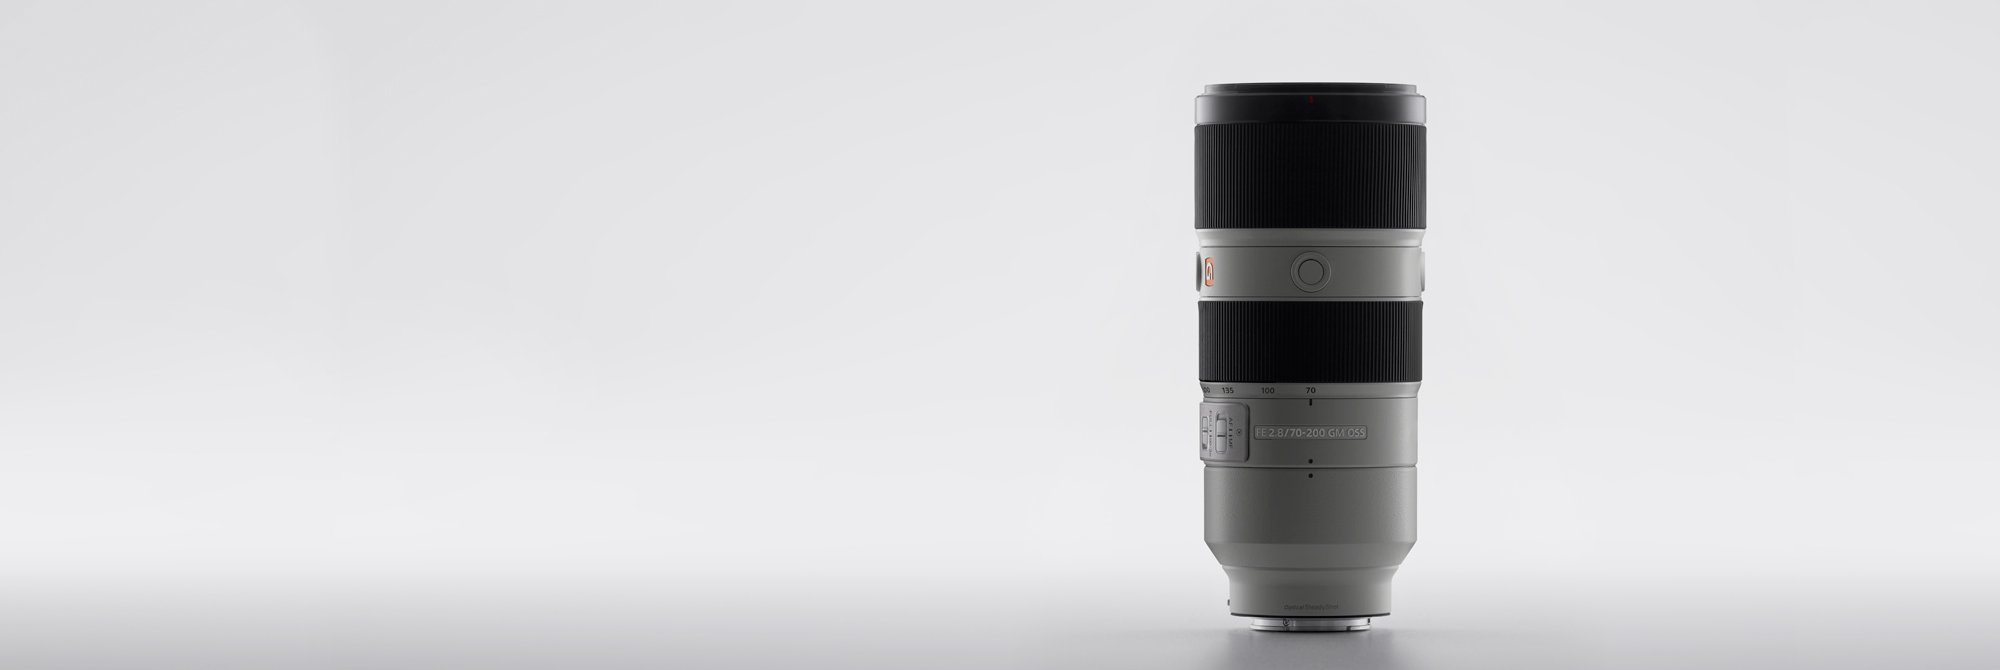 G MASTER FE 70-200mm F2.8 GM OSS Commentary of Engineers - FE 70-200mm F2.8 GM OSS 開発者インタビュー -